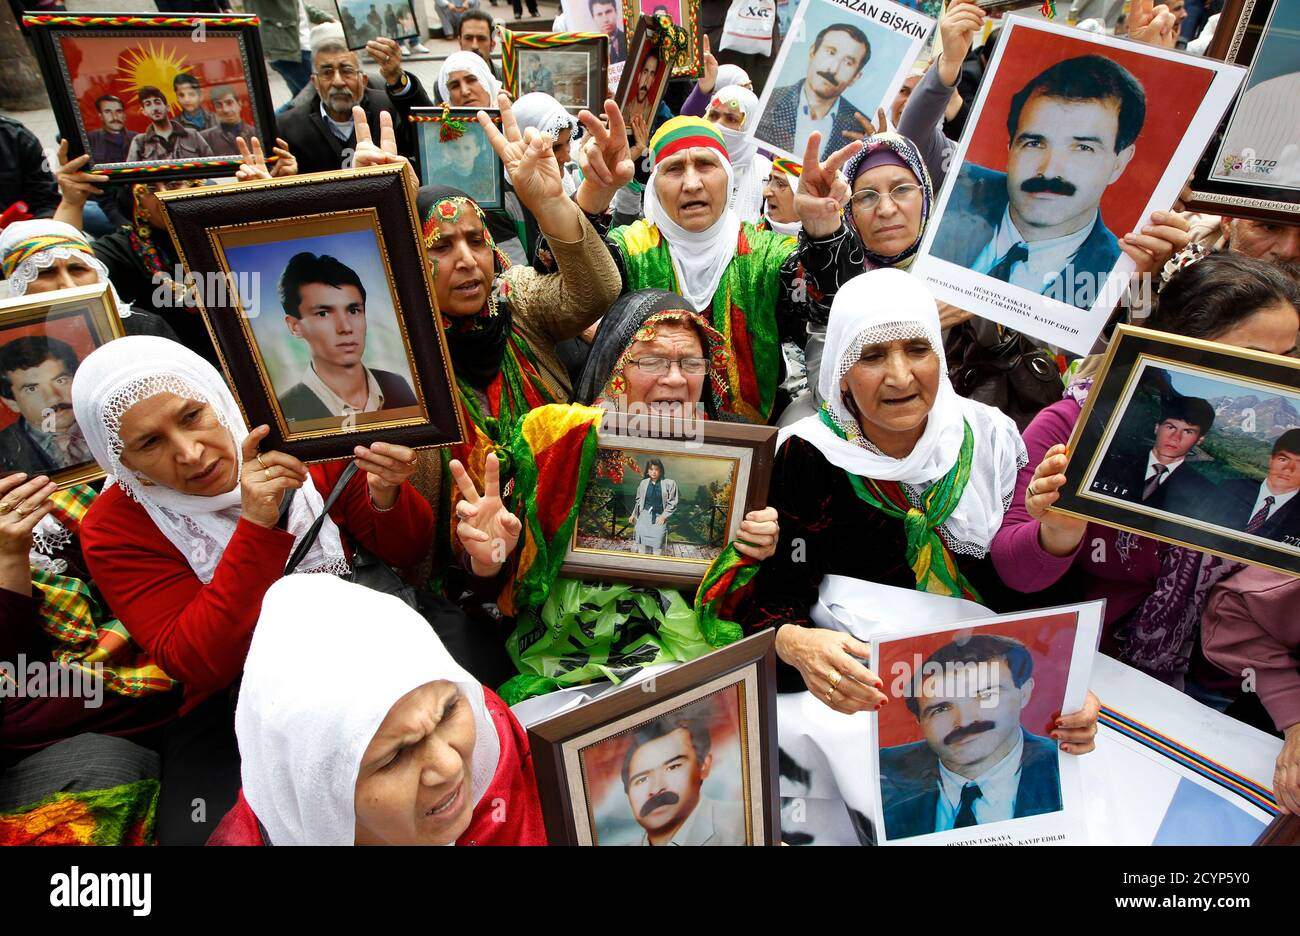 Turkish Kurdish women hold pictures of their loved ones who were killed in clashes between Kurdistan Workers Party (PKK) guerrillas and Turkish security forces, during a demonstration in central Istanbul May 18, 2011. More than 40,000 people have been killed in a separatist conflict in southeast Turkey since the Kurdistan Workers Party (PKK) took up arms against the state in 1984. REUTERS/Murad Sezer (TURKEY - Tags: POLITICS CIVIL UNREST IMAGES OF THE DAY) Stock Photo